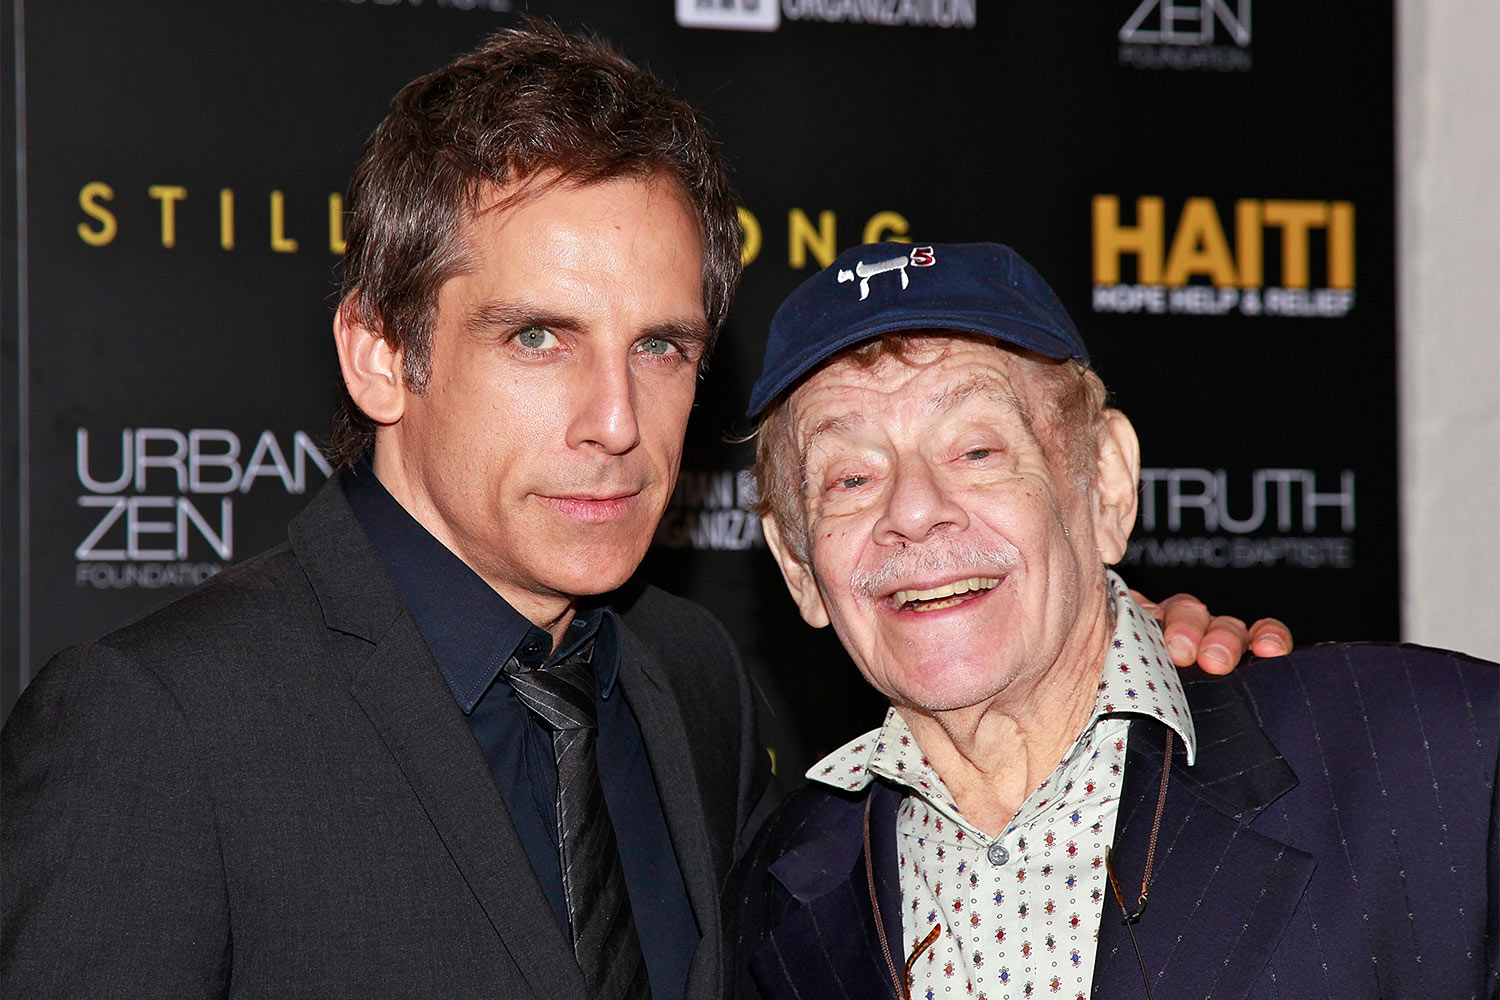 Ben Stiller and Jerry Stiller